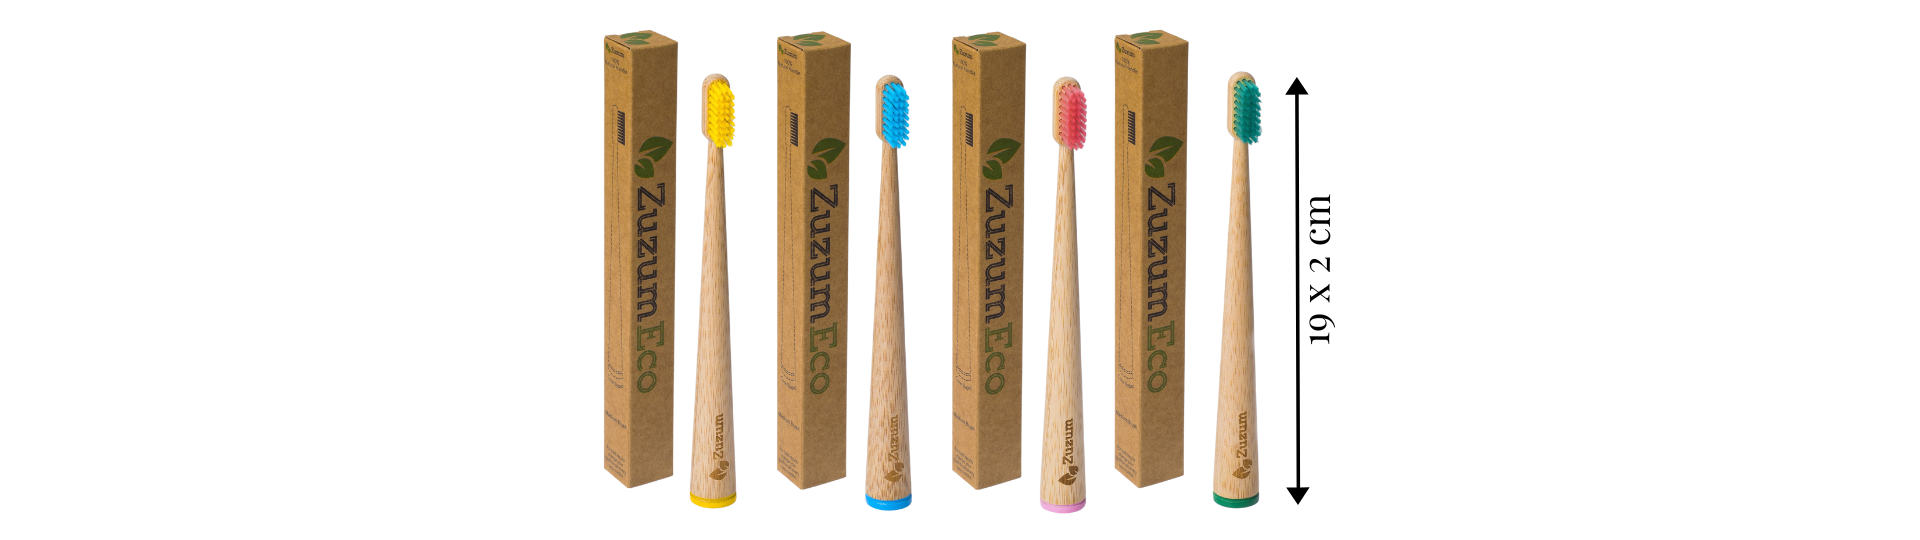 The dimensions of our adult self standing toothbrushes. In pink, blue, yellow and green.